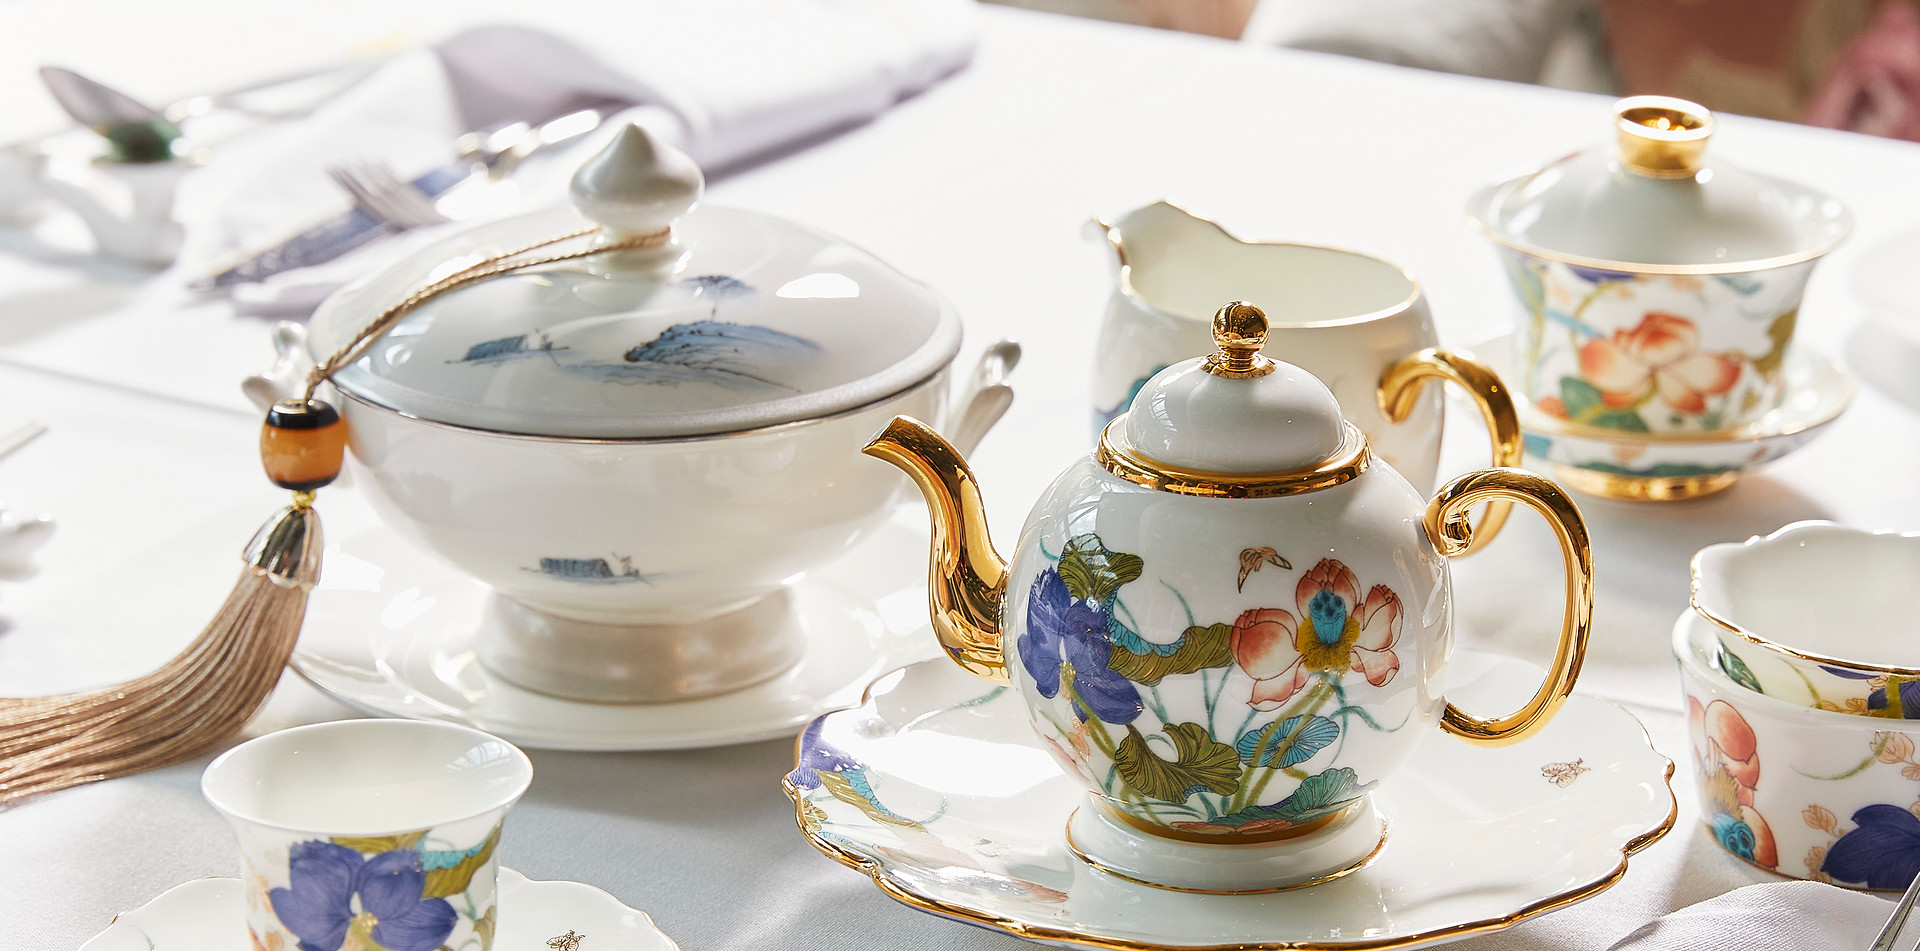 20200929_OISOI_AfternoonTea_FoodOnly_214